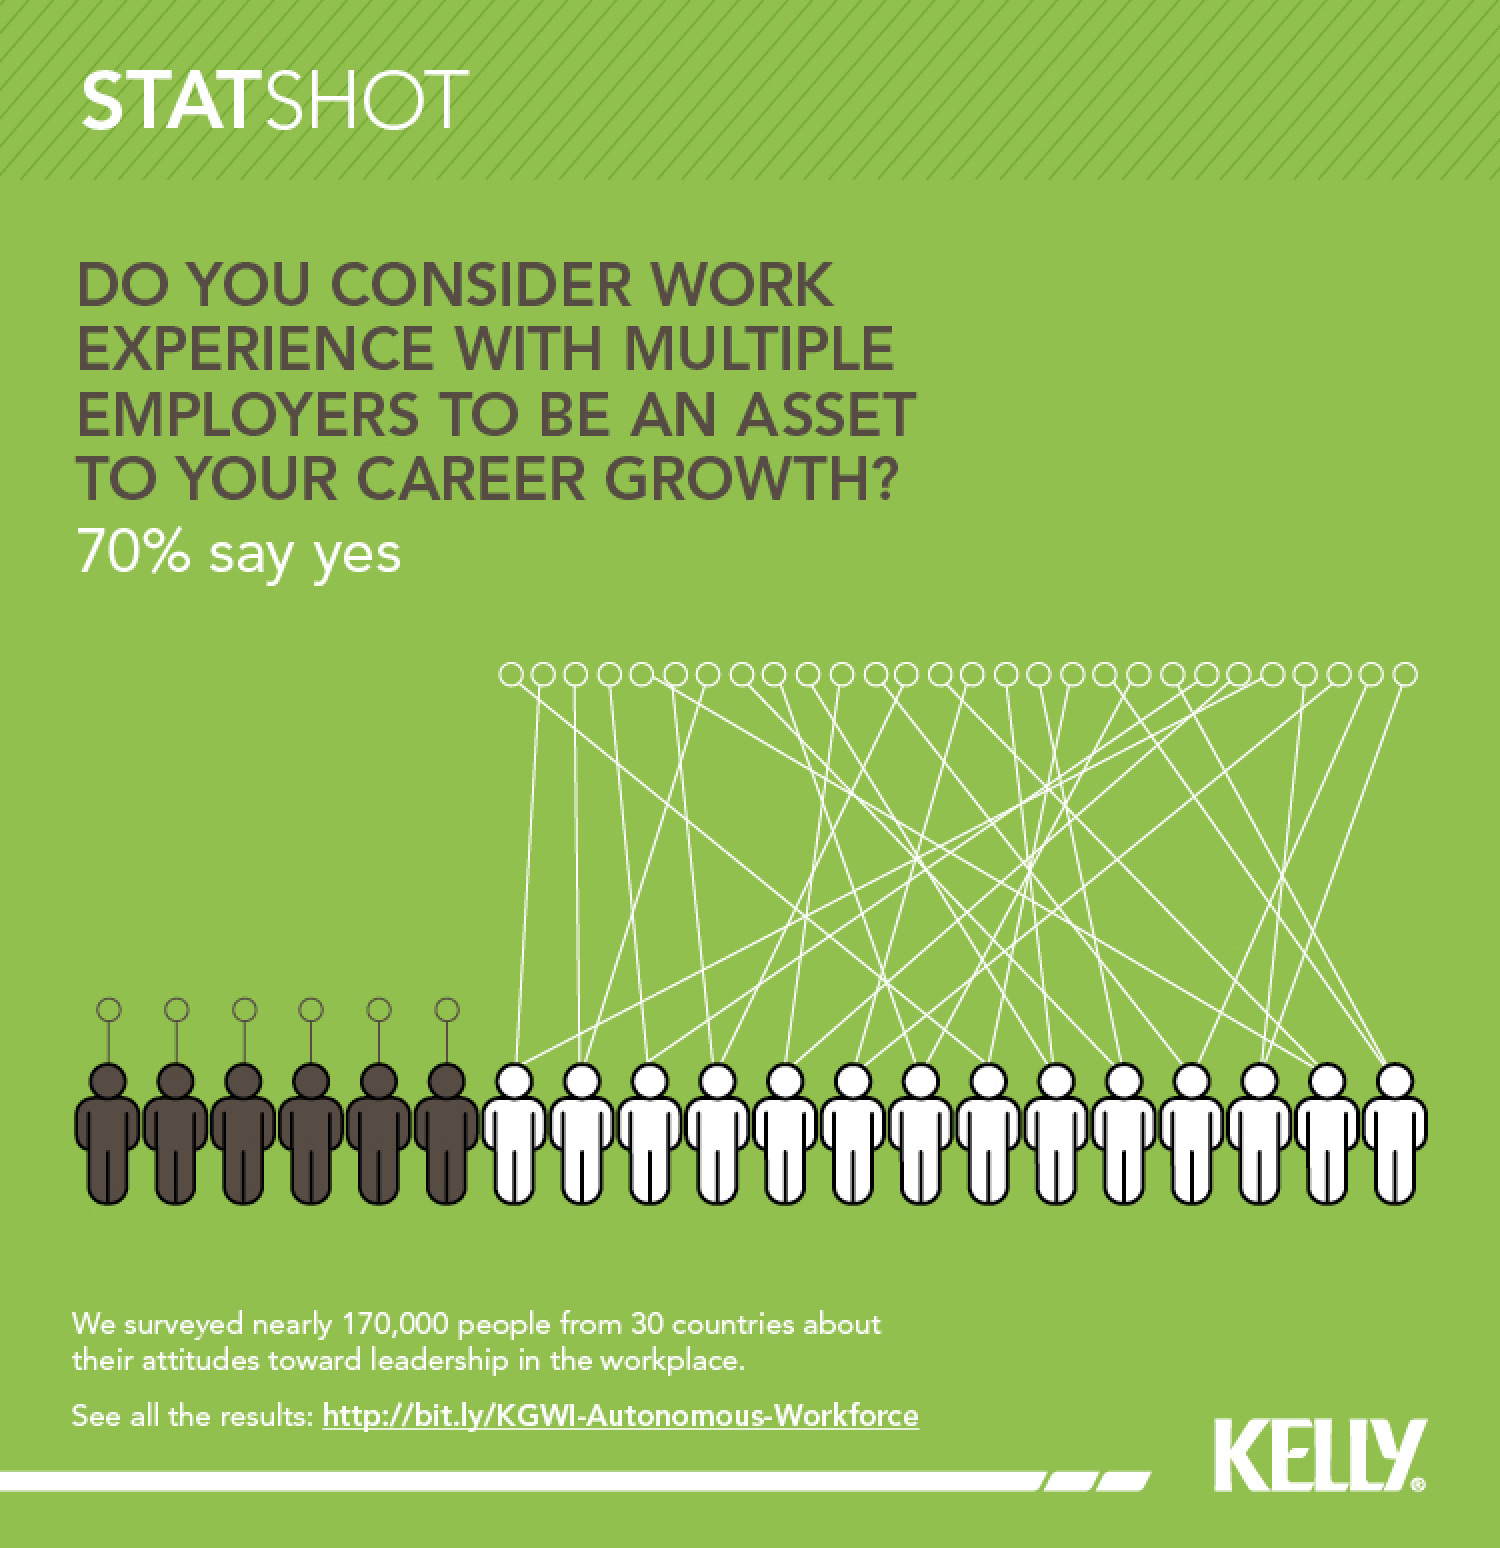 The asset of working for multiple employers Infographic